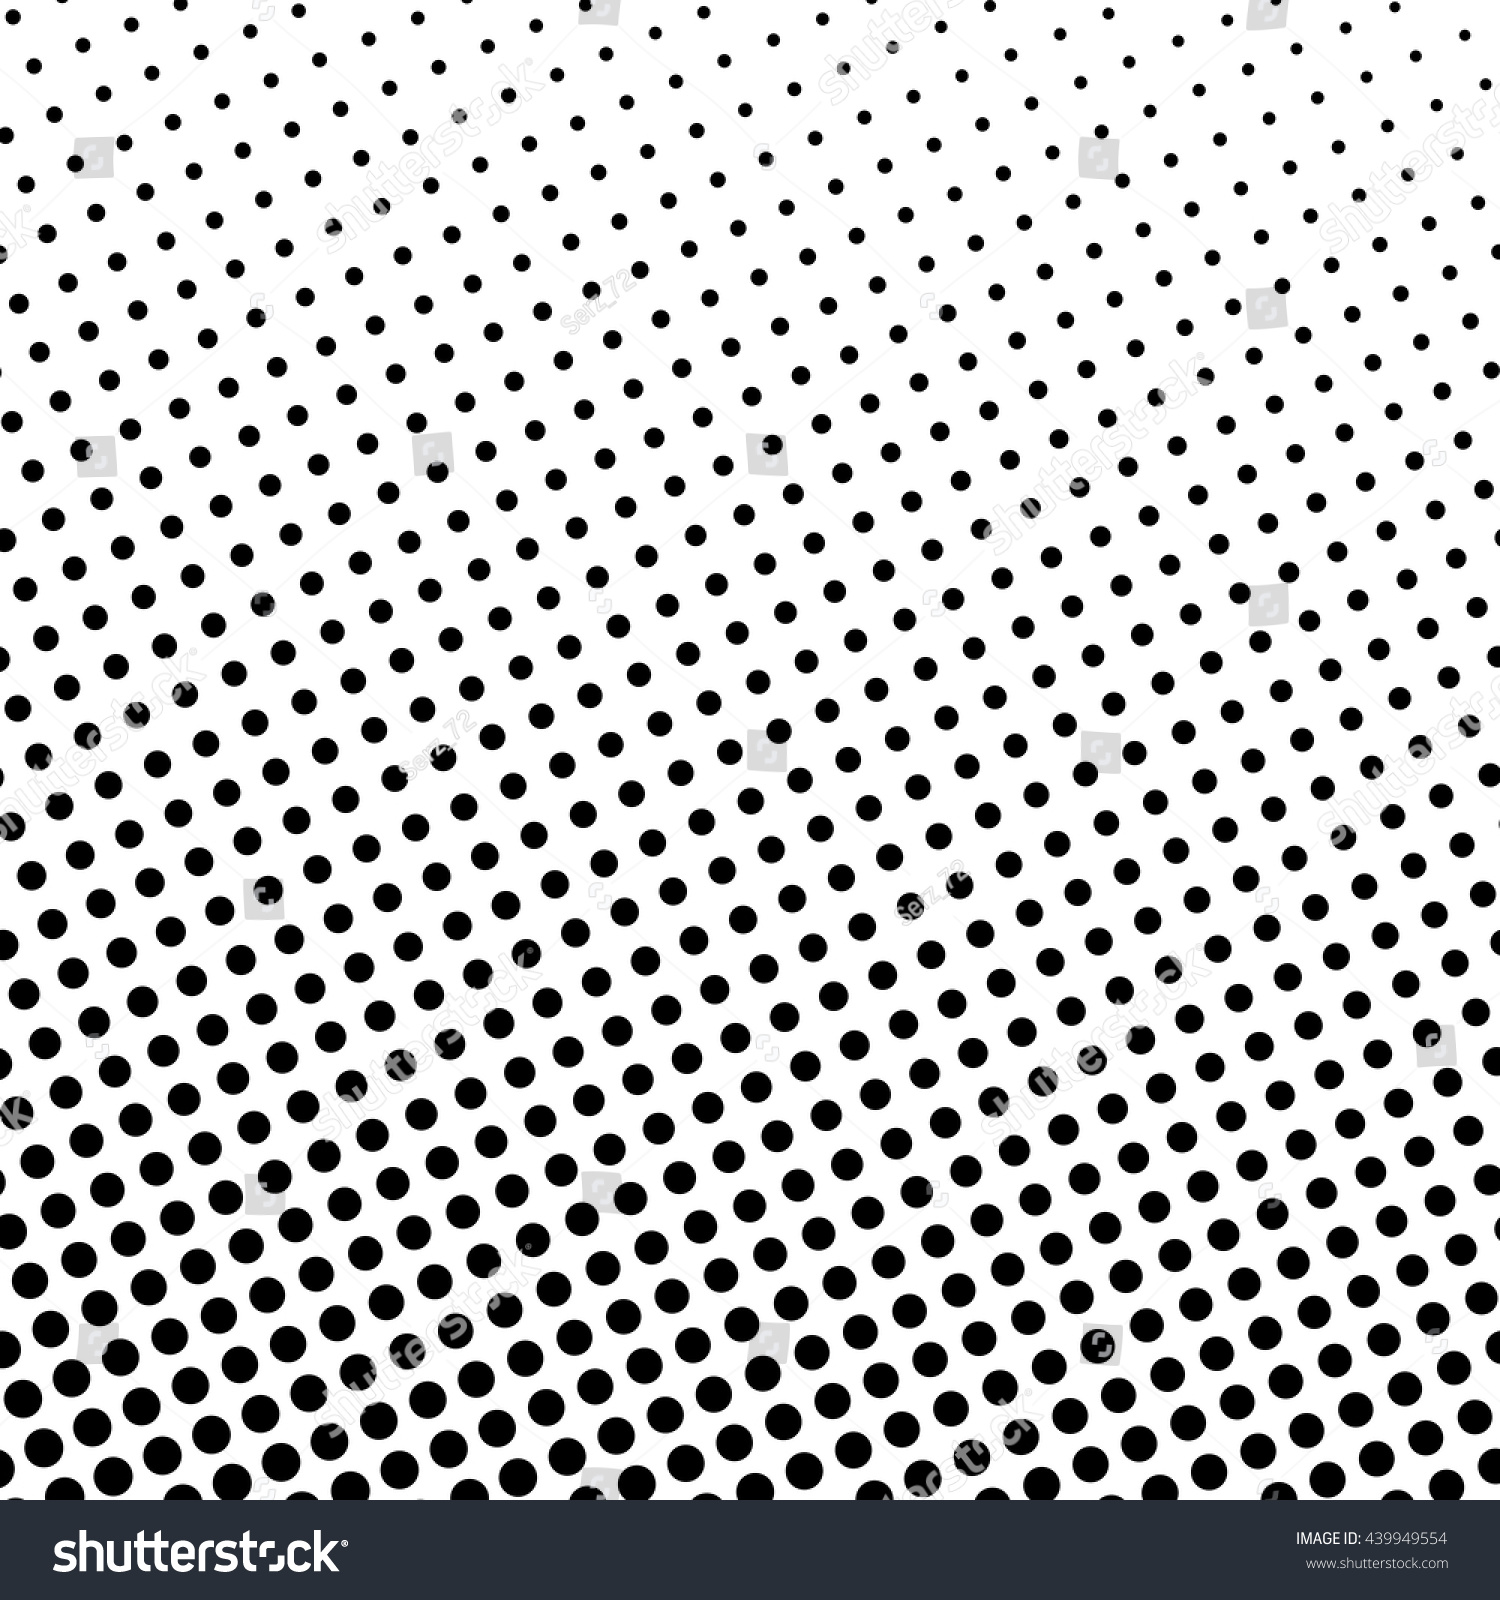 Background image bottom 0 - Pop Art Background Black Dots On A White Background Gradient From Bottom Left To